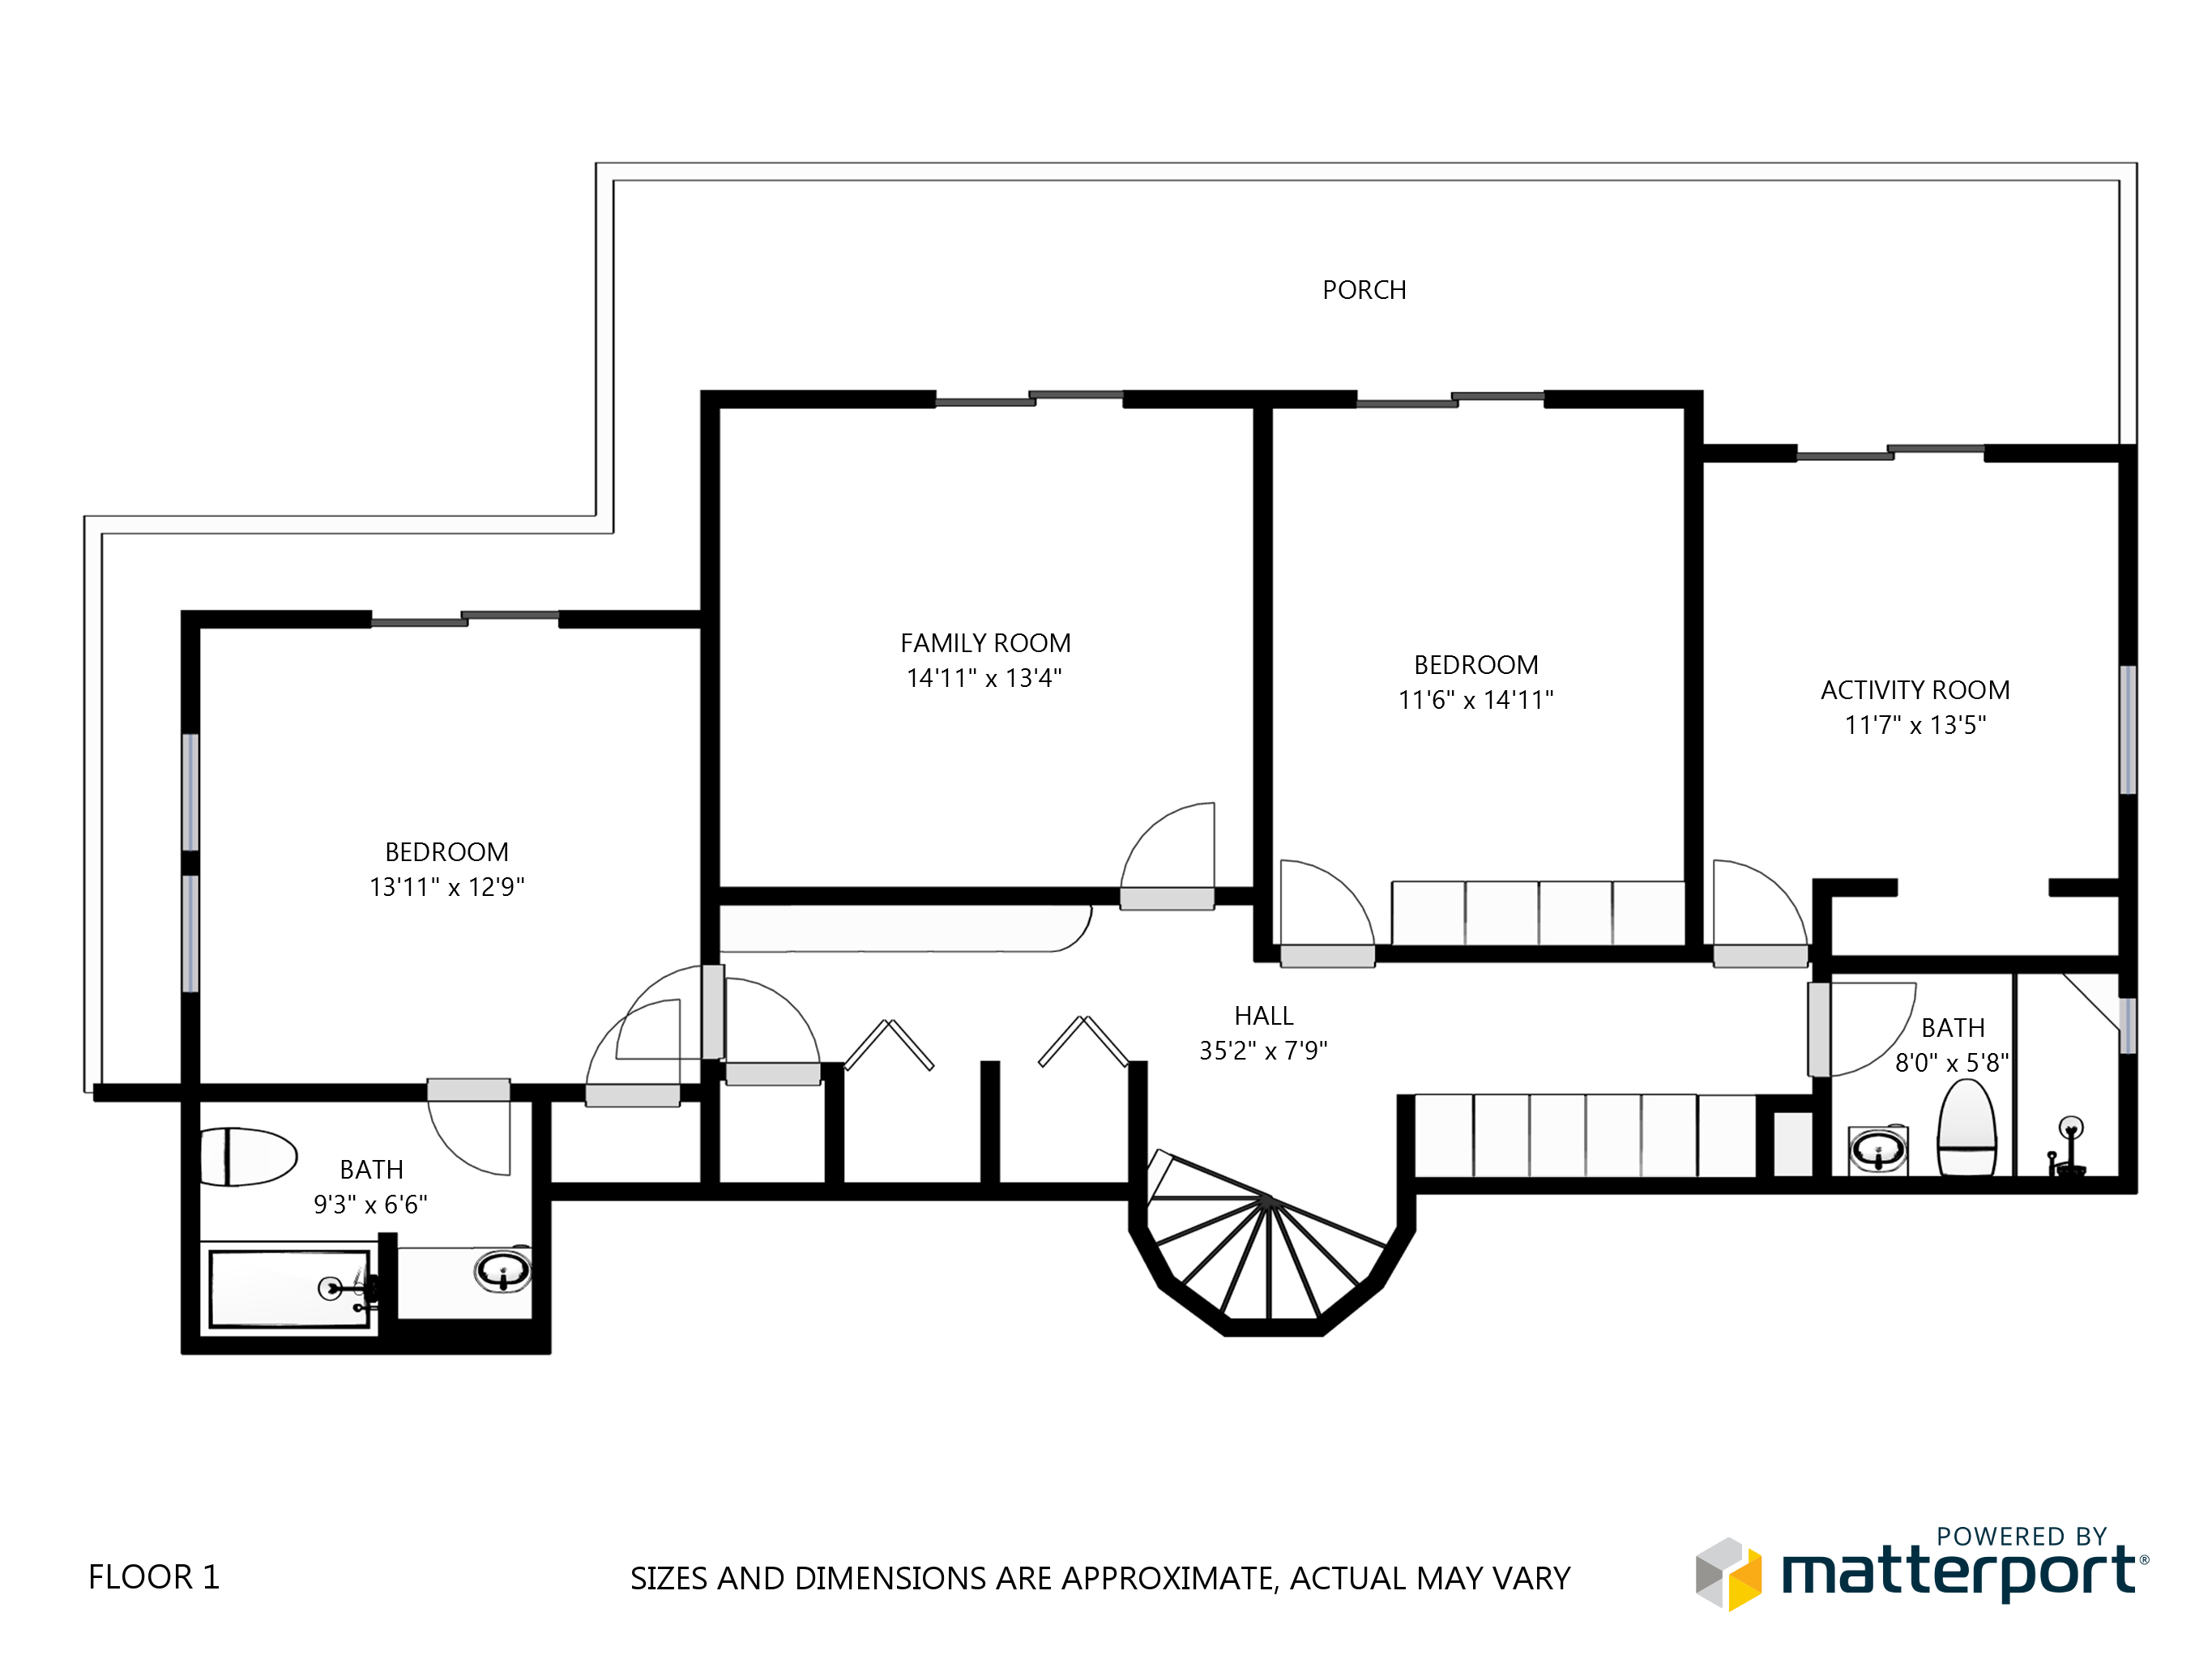 Frequently asked questions about the matterport 3d media Floor plan view